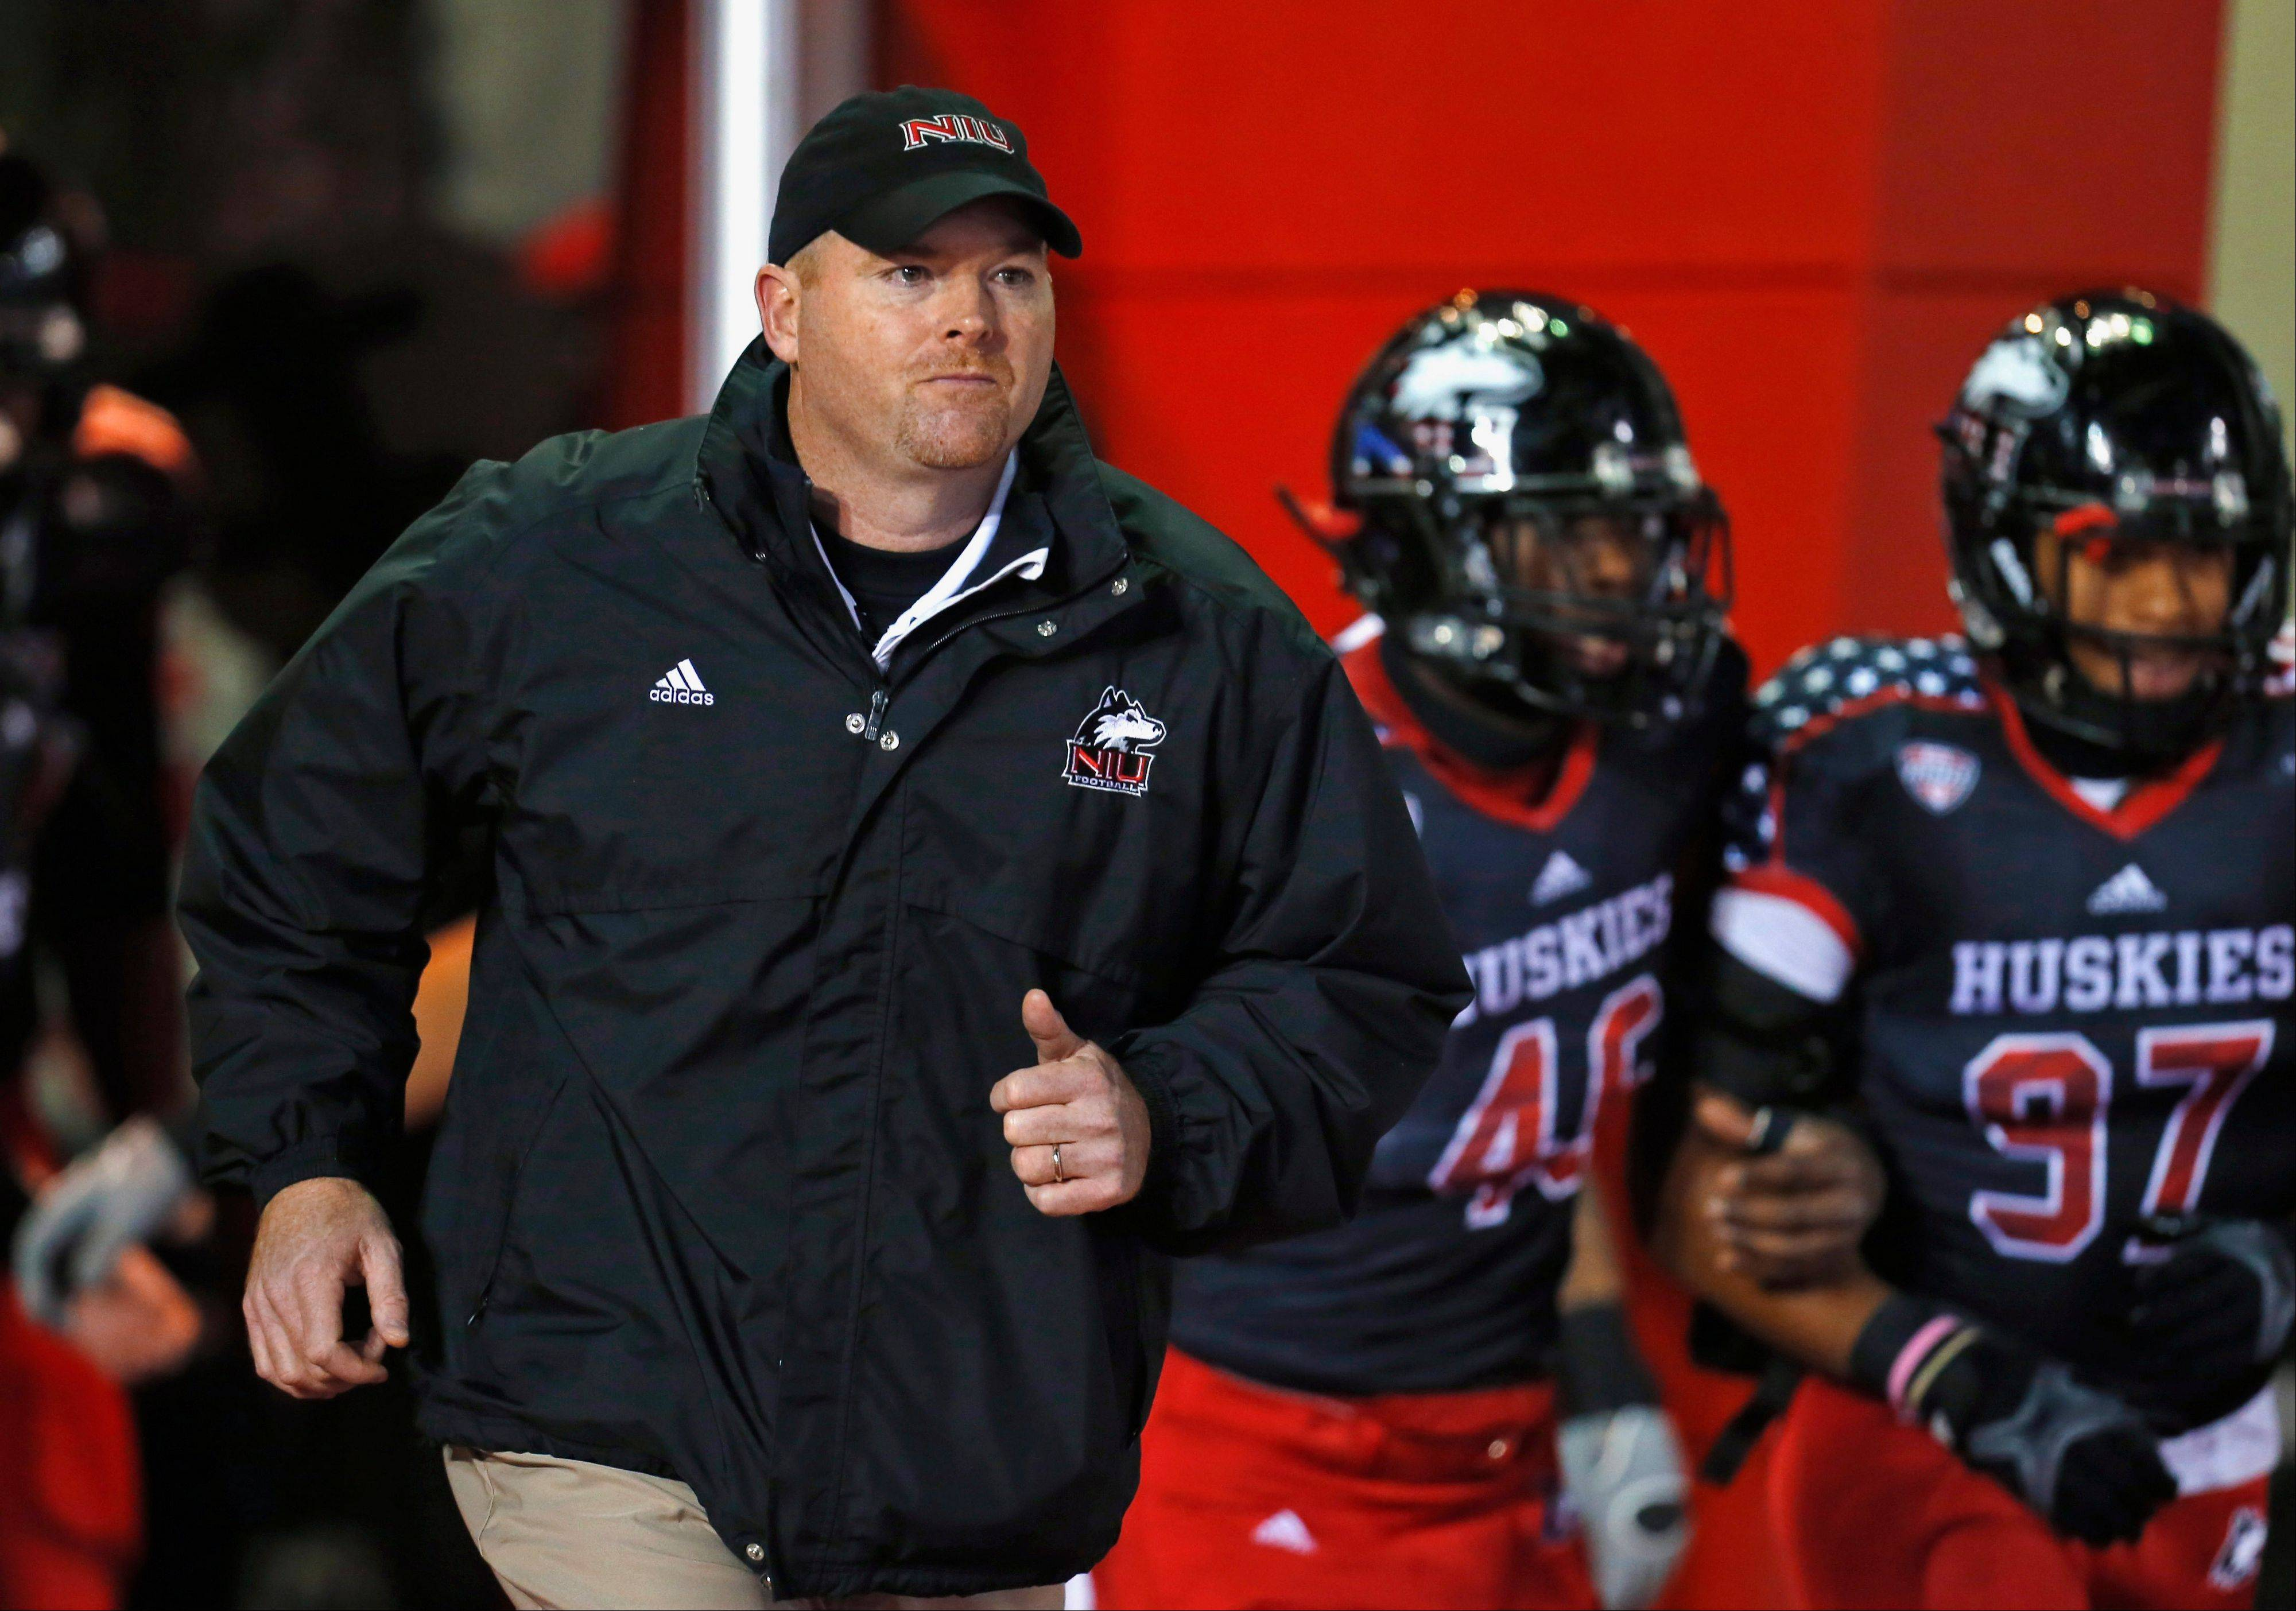 Northern Illinois head coach Rod Carey will lead his team Dec. 26 onto the field at Qualcomm Stadium in San Diego.